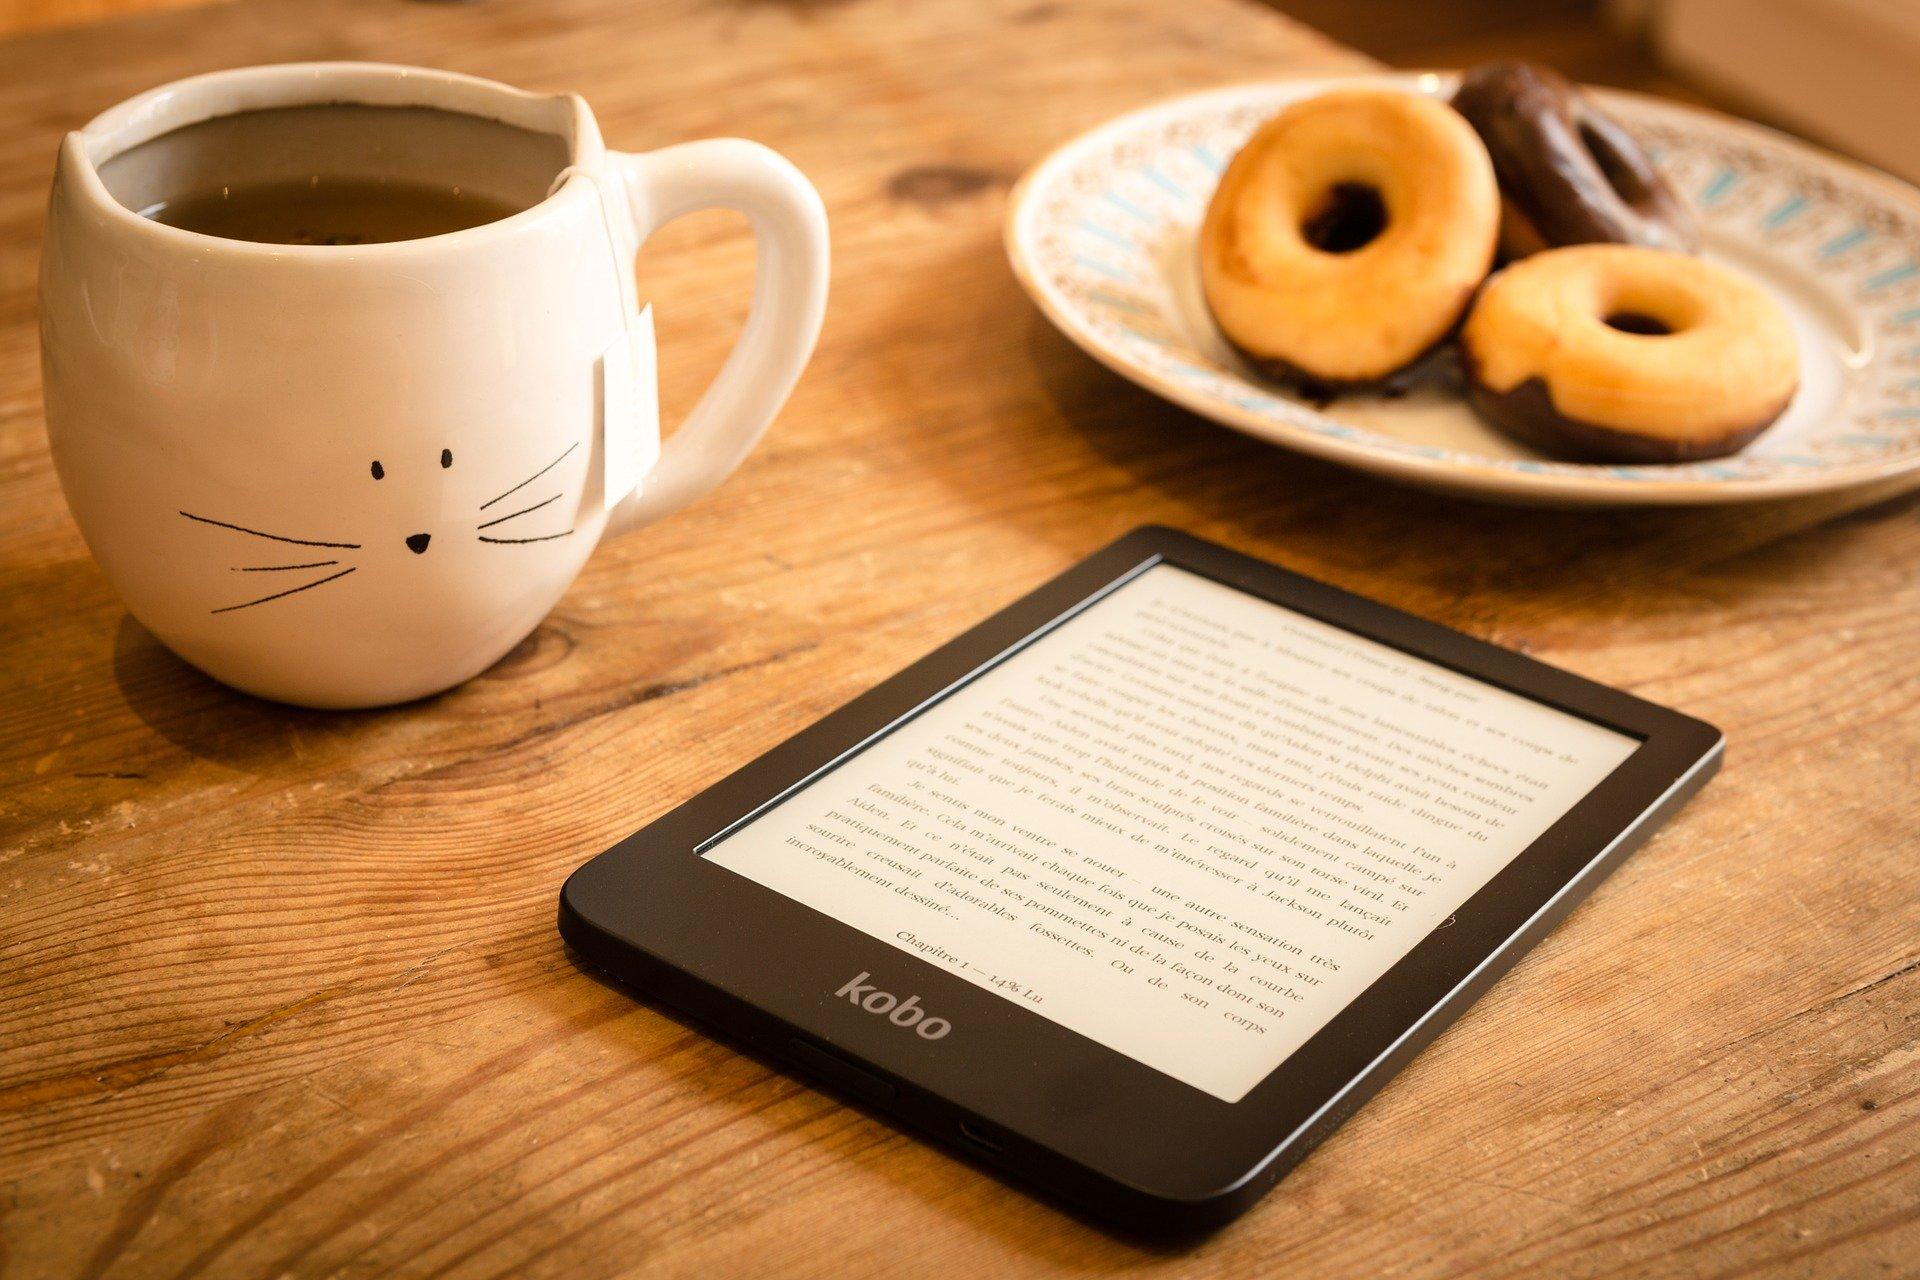 ereader sitting on table with cat mug with tea and donuts